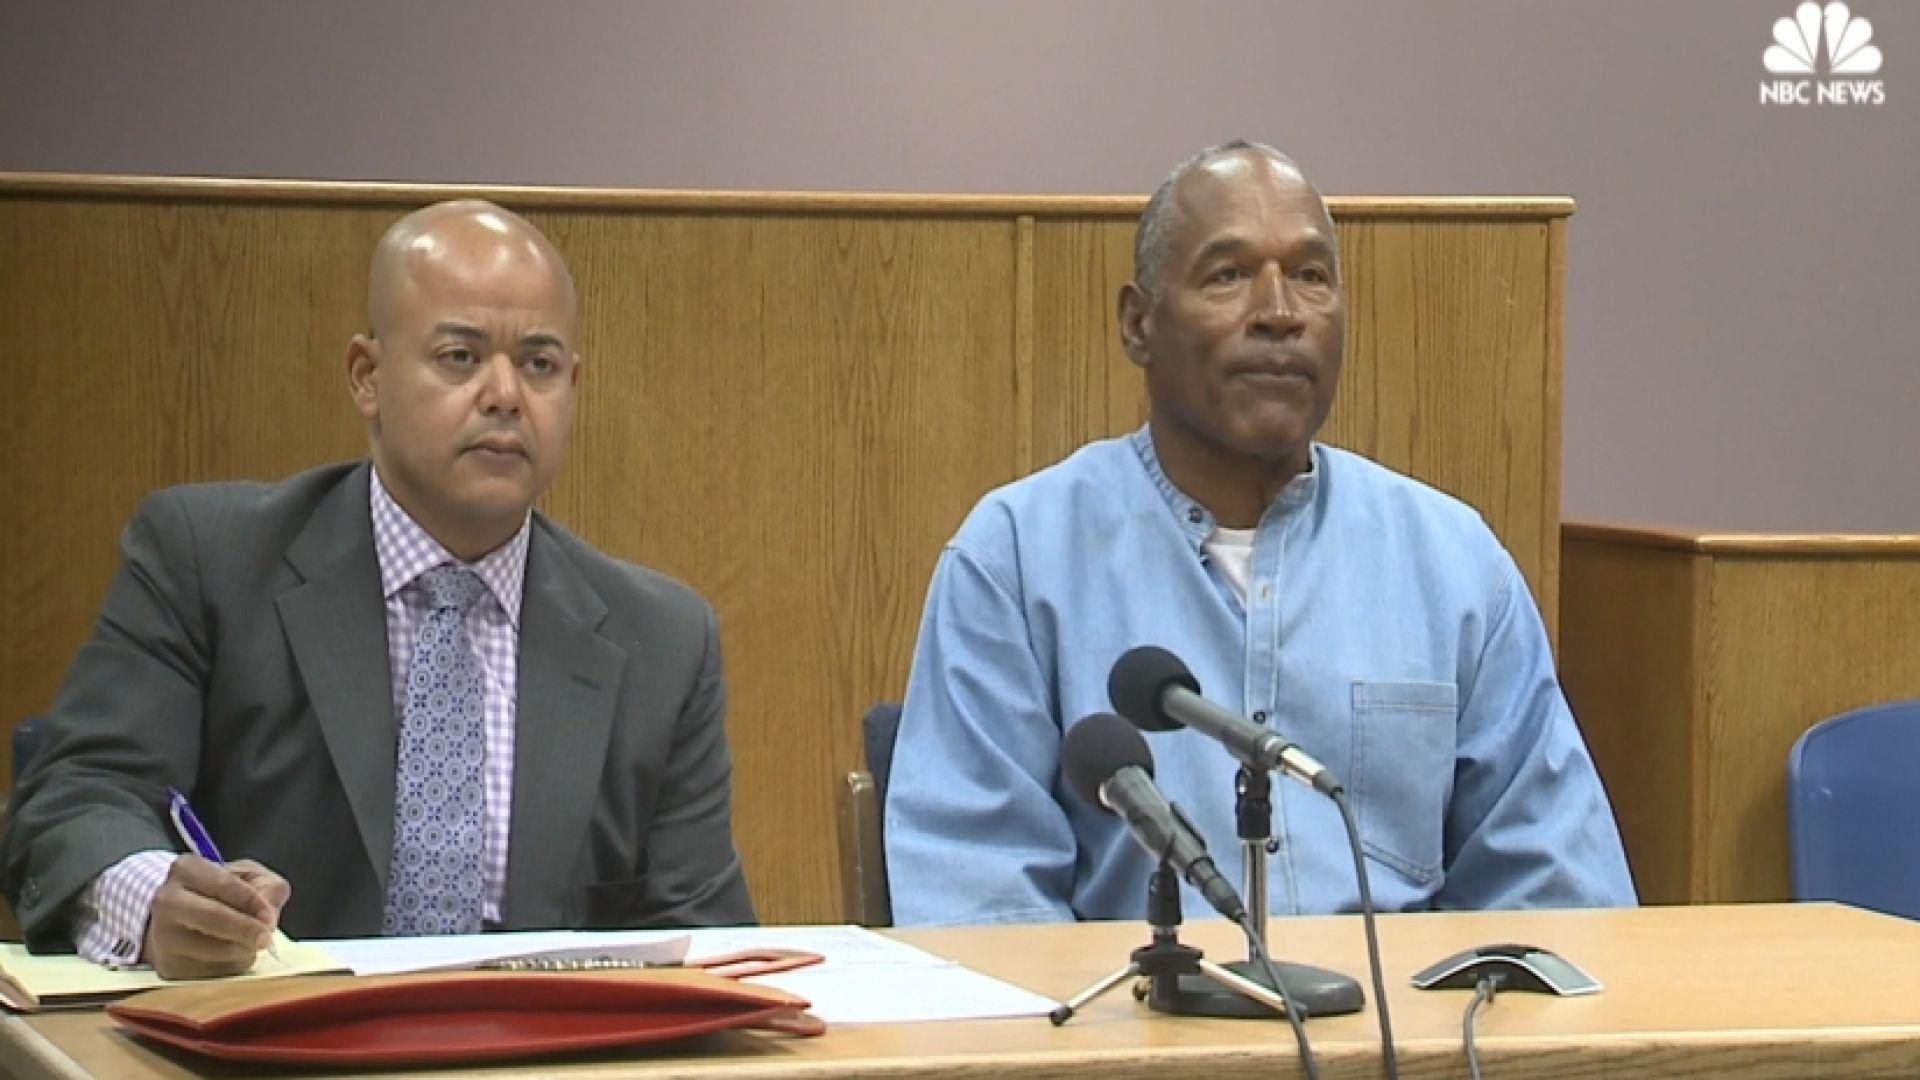 OJ Simpson has served almost 9 years in a Nevada prison. (NBC News)